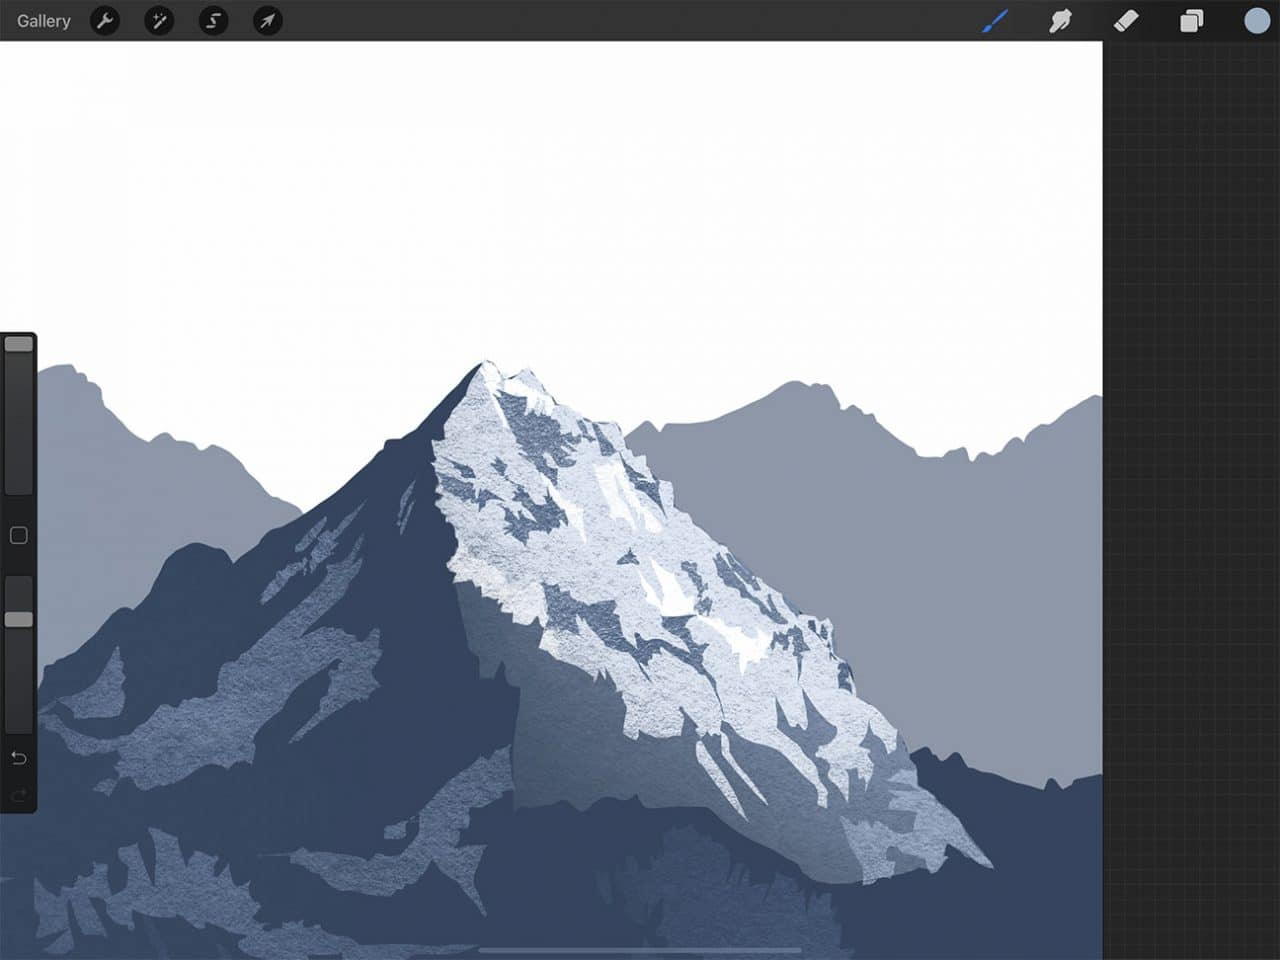 How to Draw Mountains: Snow-capped peaks are easy to capture using Procreate